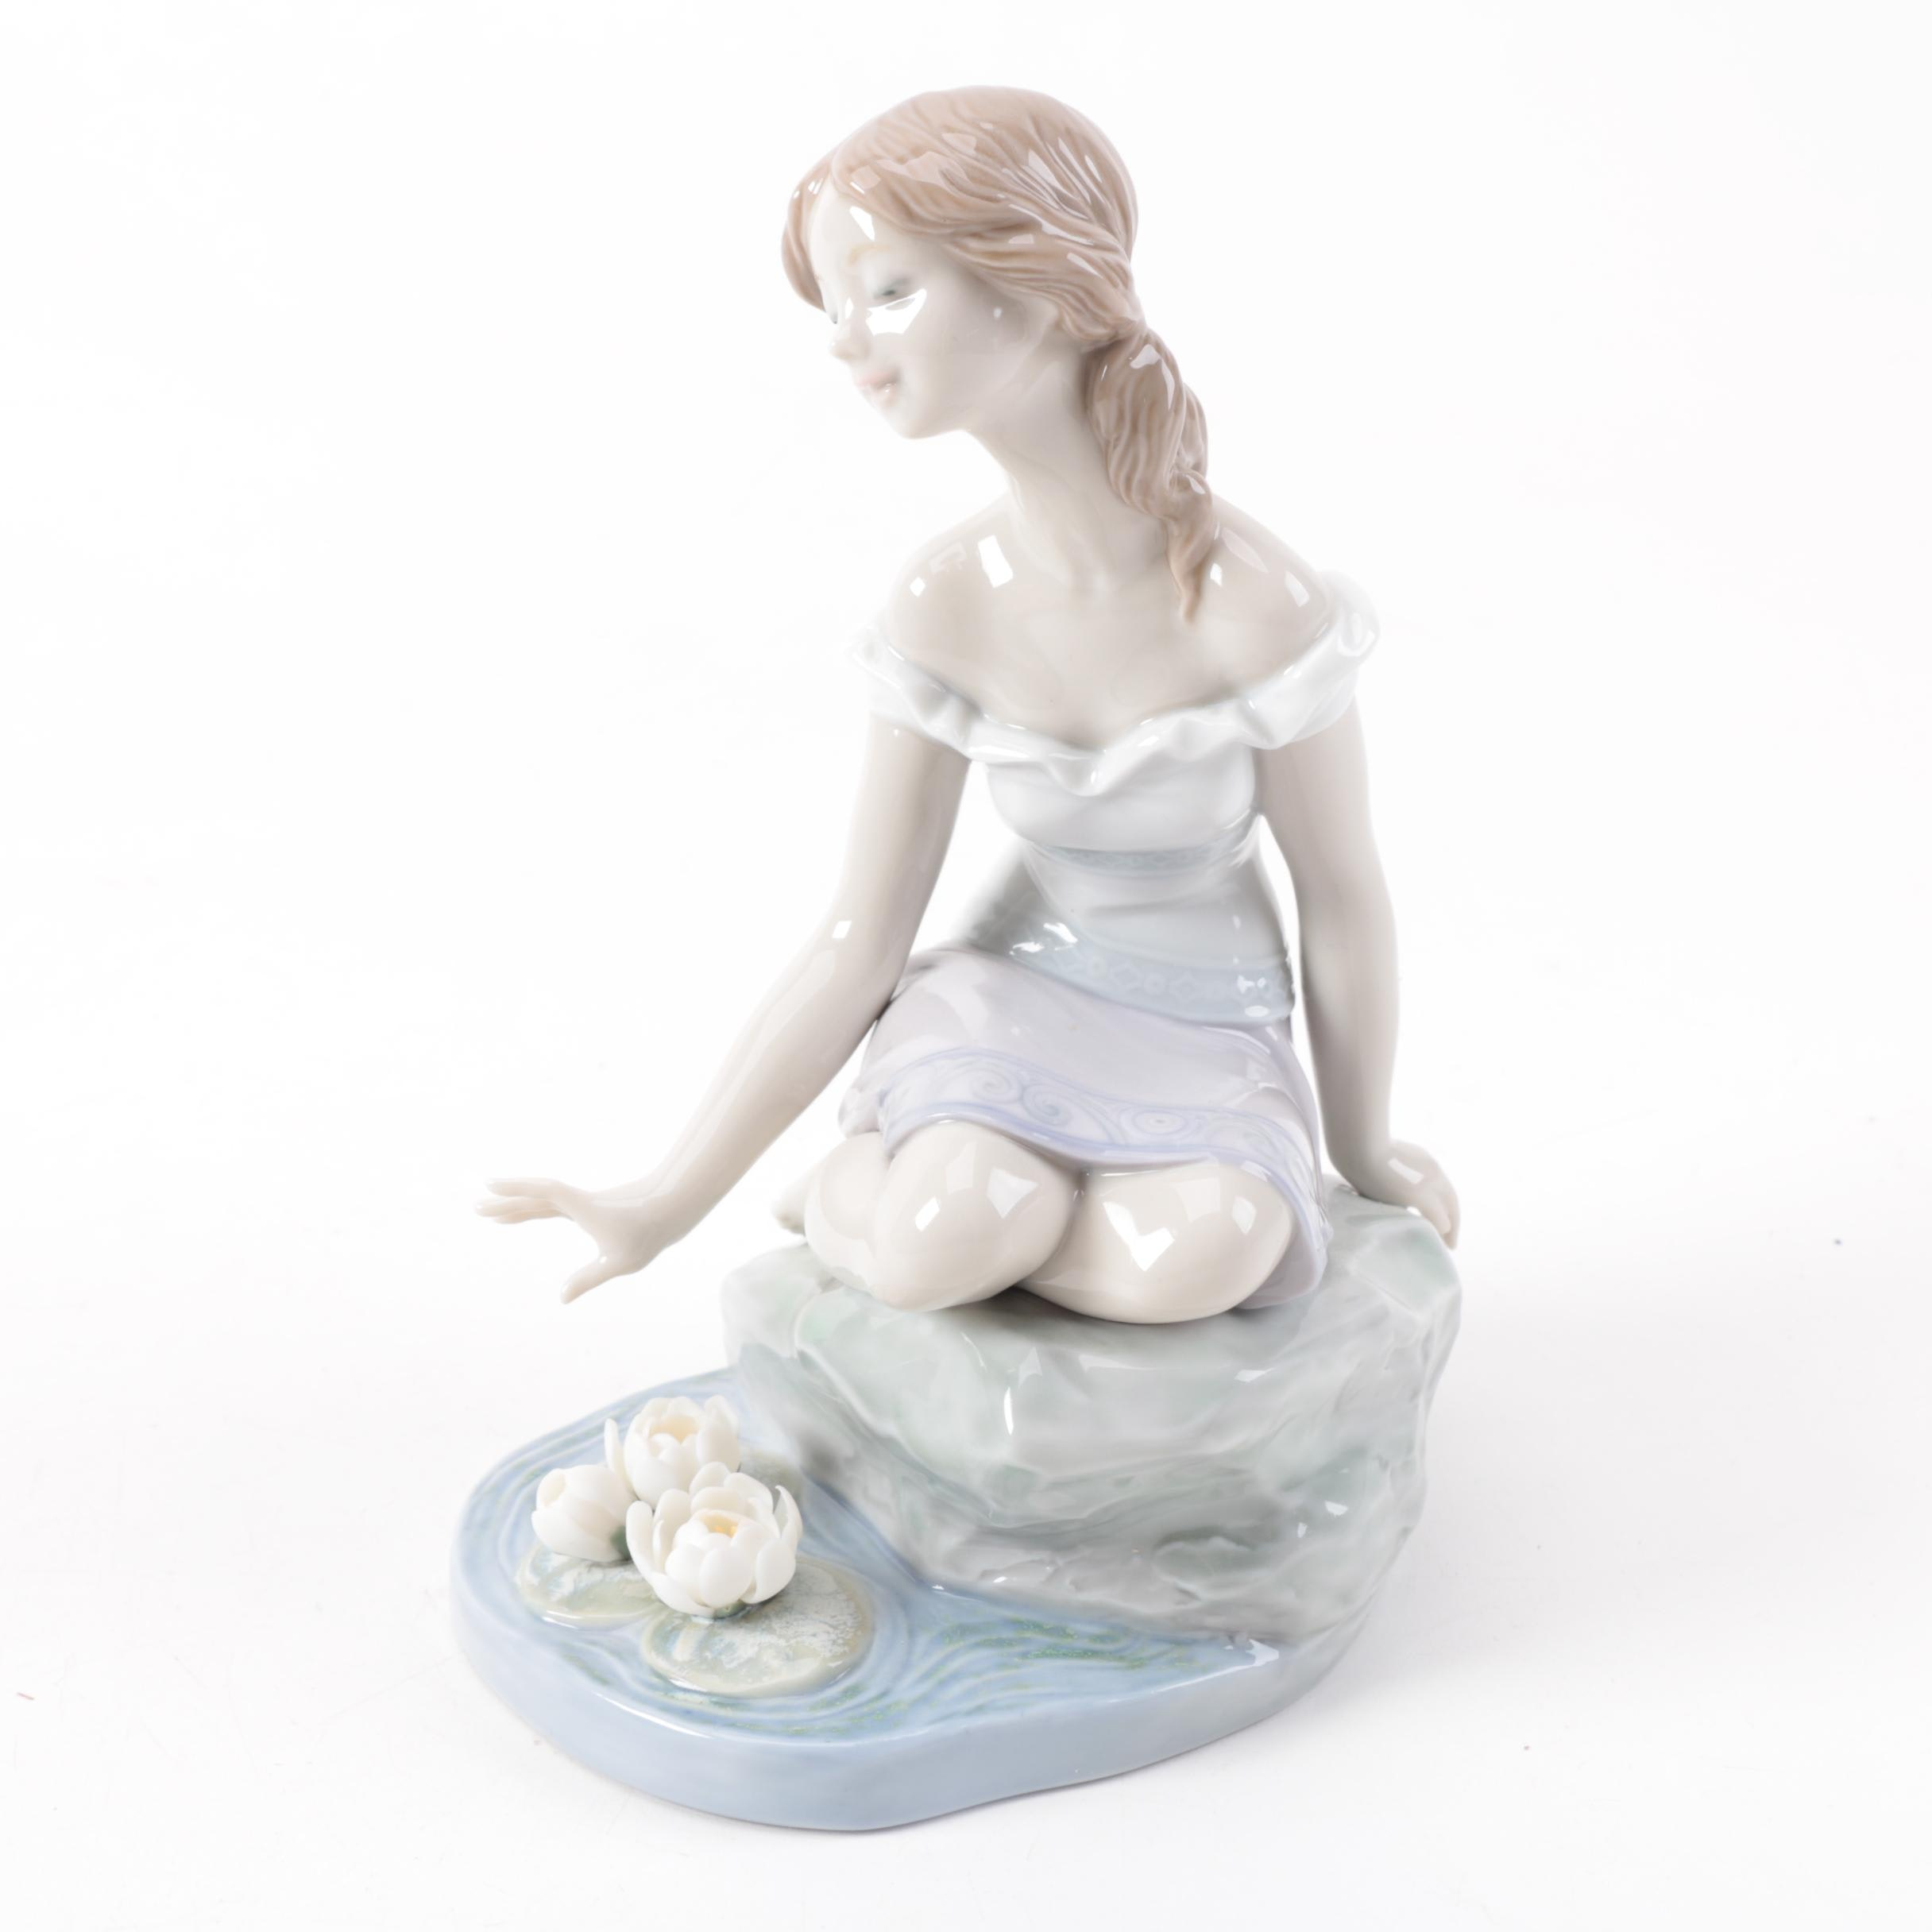 """Lladró Privilege Society Porcelain Figurine """"Reflections of Helena"""""""